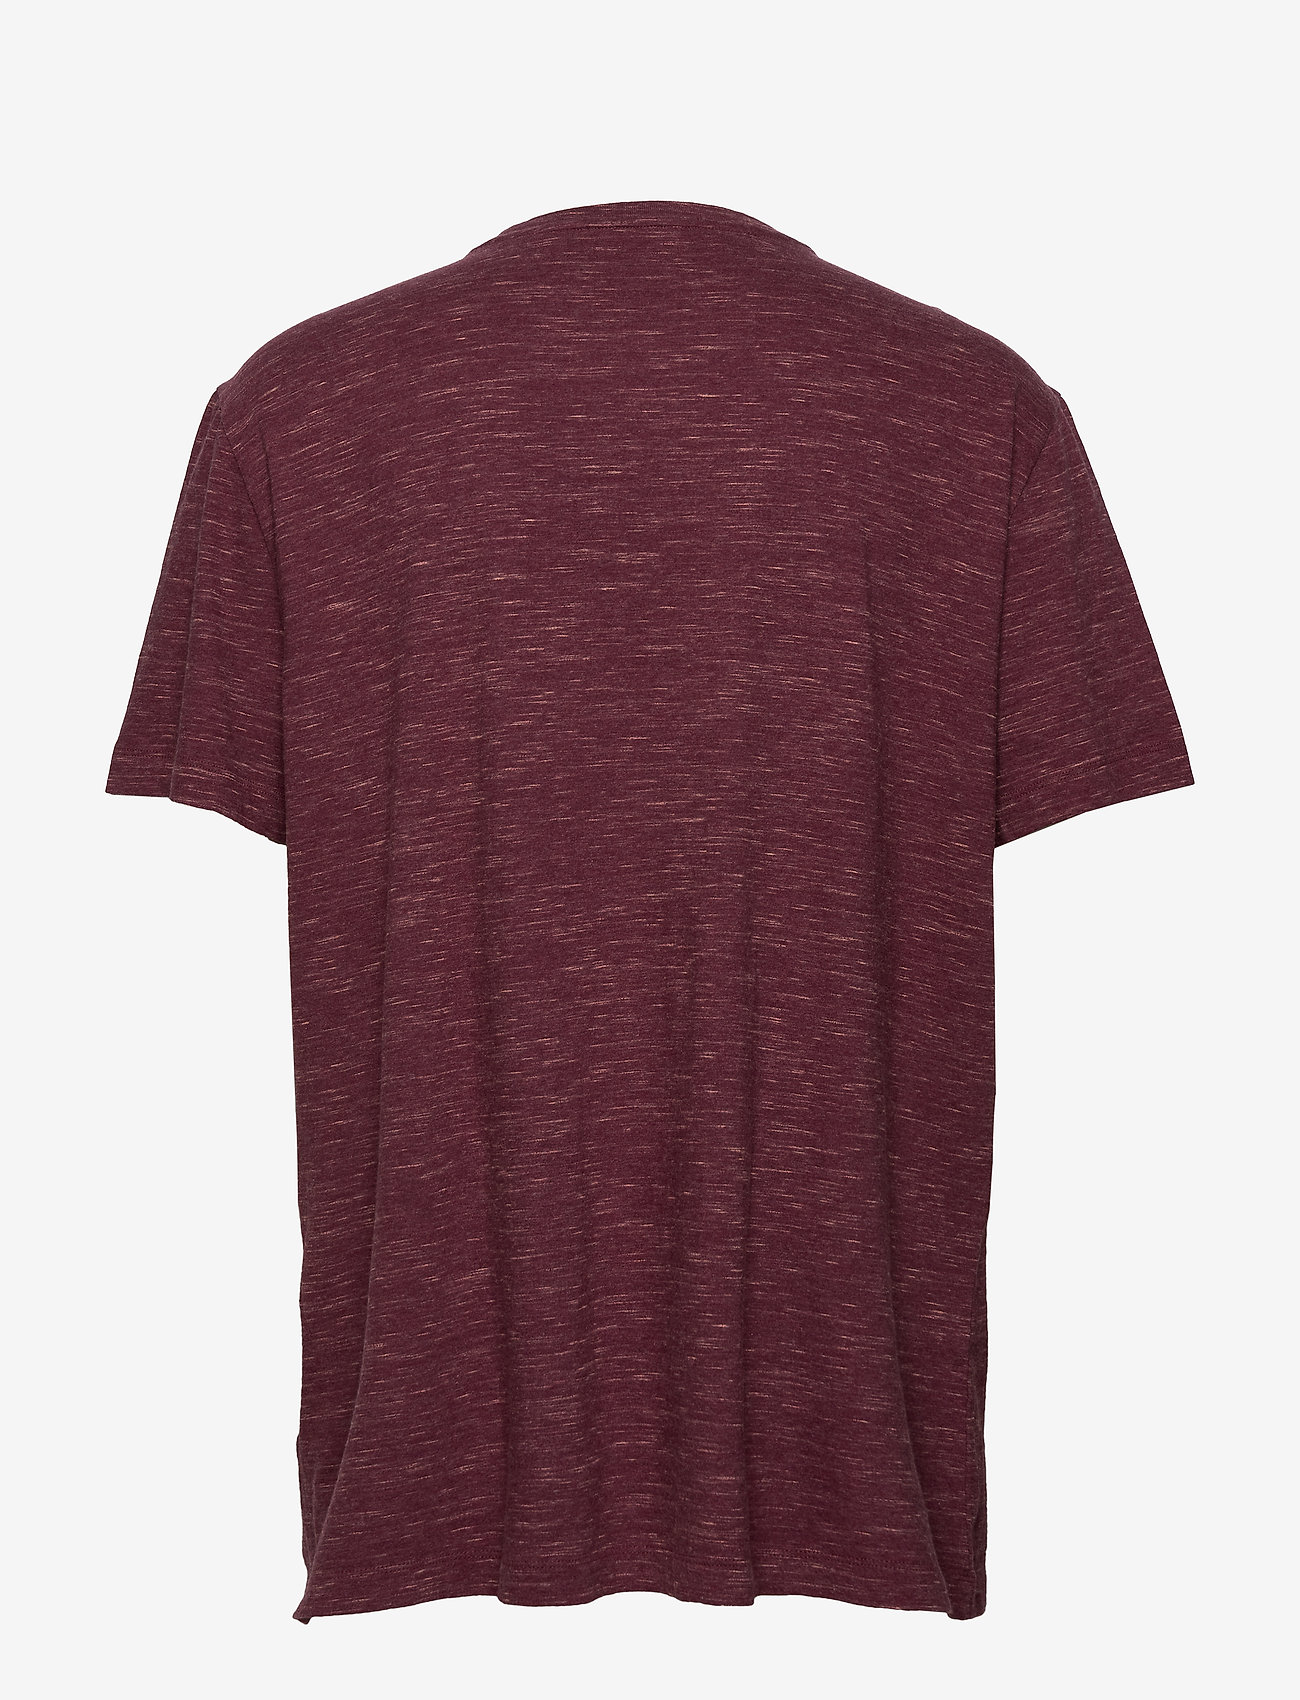 Banana Republic - I LOGO SOFTWASH ORGANIC TEE - basic t-shirts - dark maroon - 1